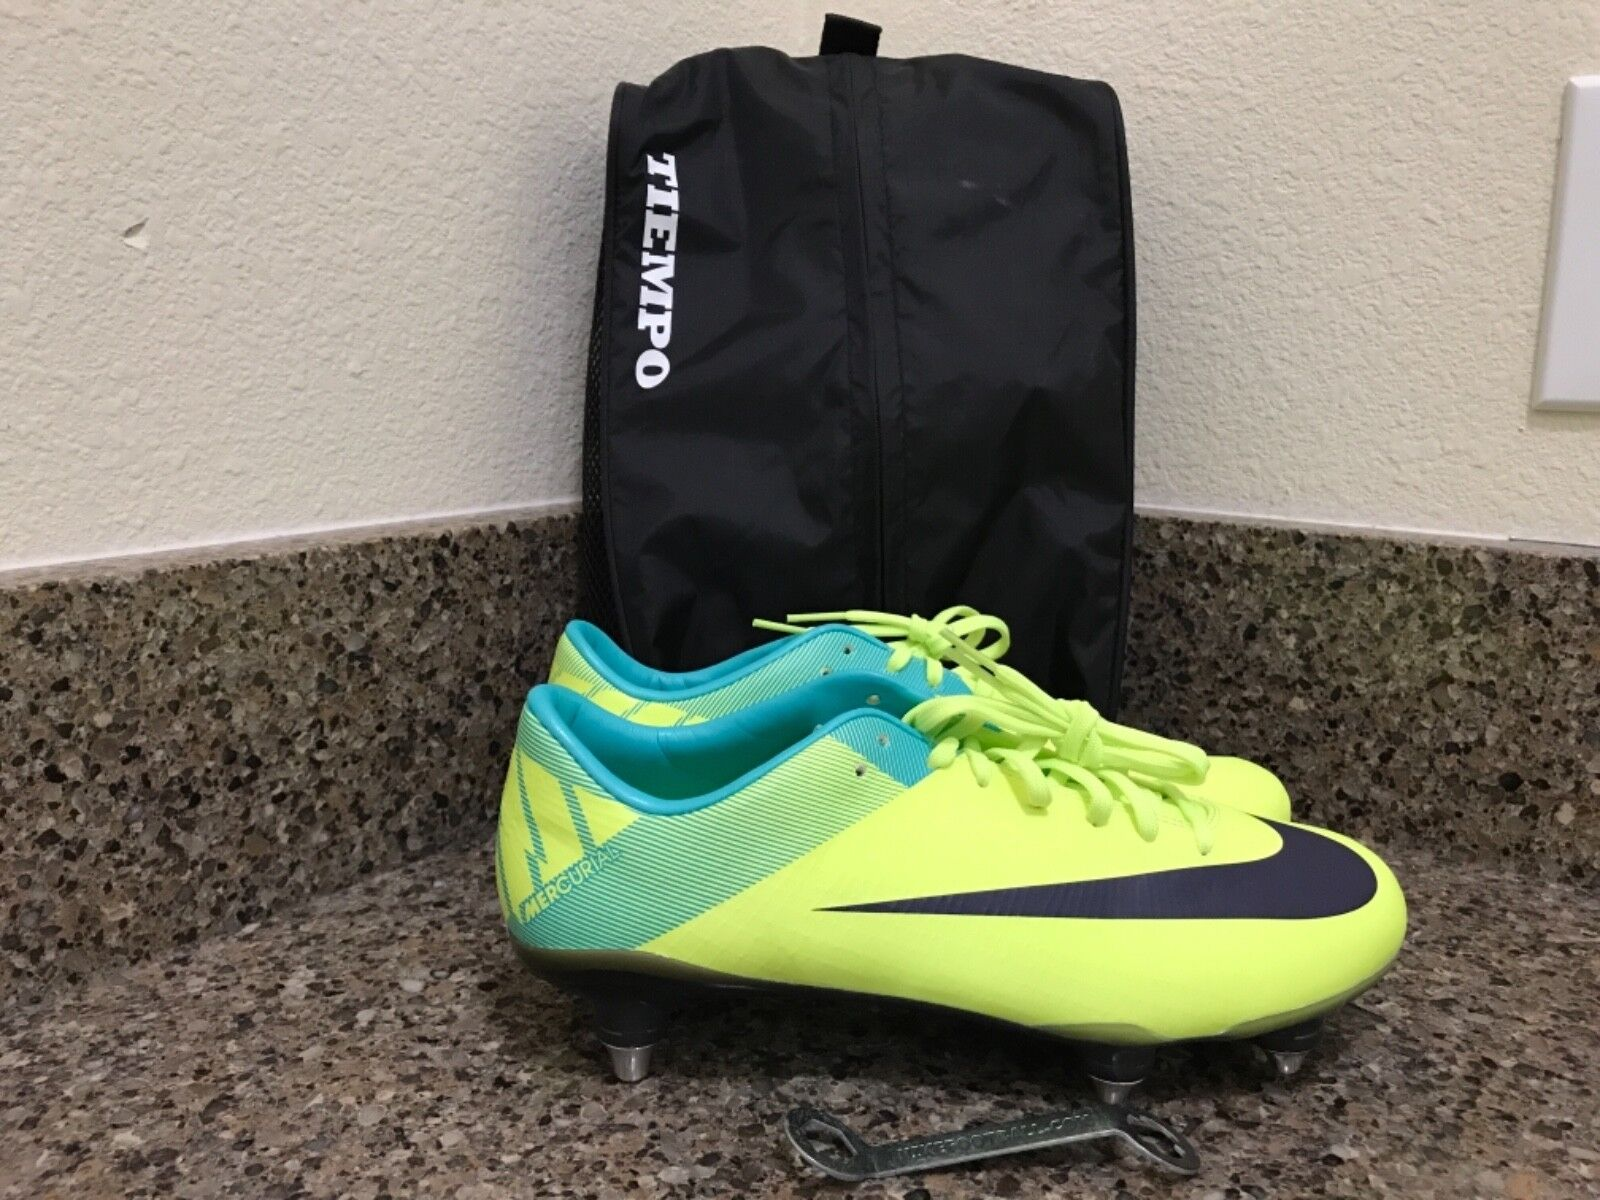 Nike Vapor Superfly III SG Soccer Cleats Volt 42469-755 Size 7